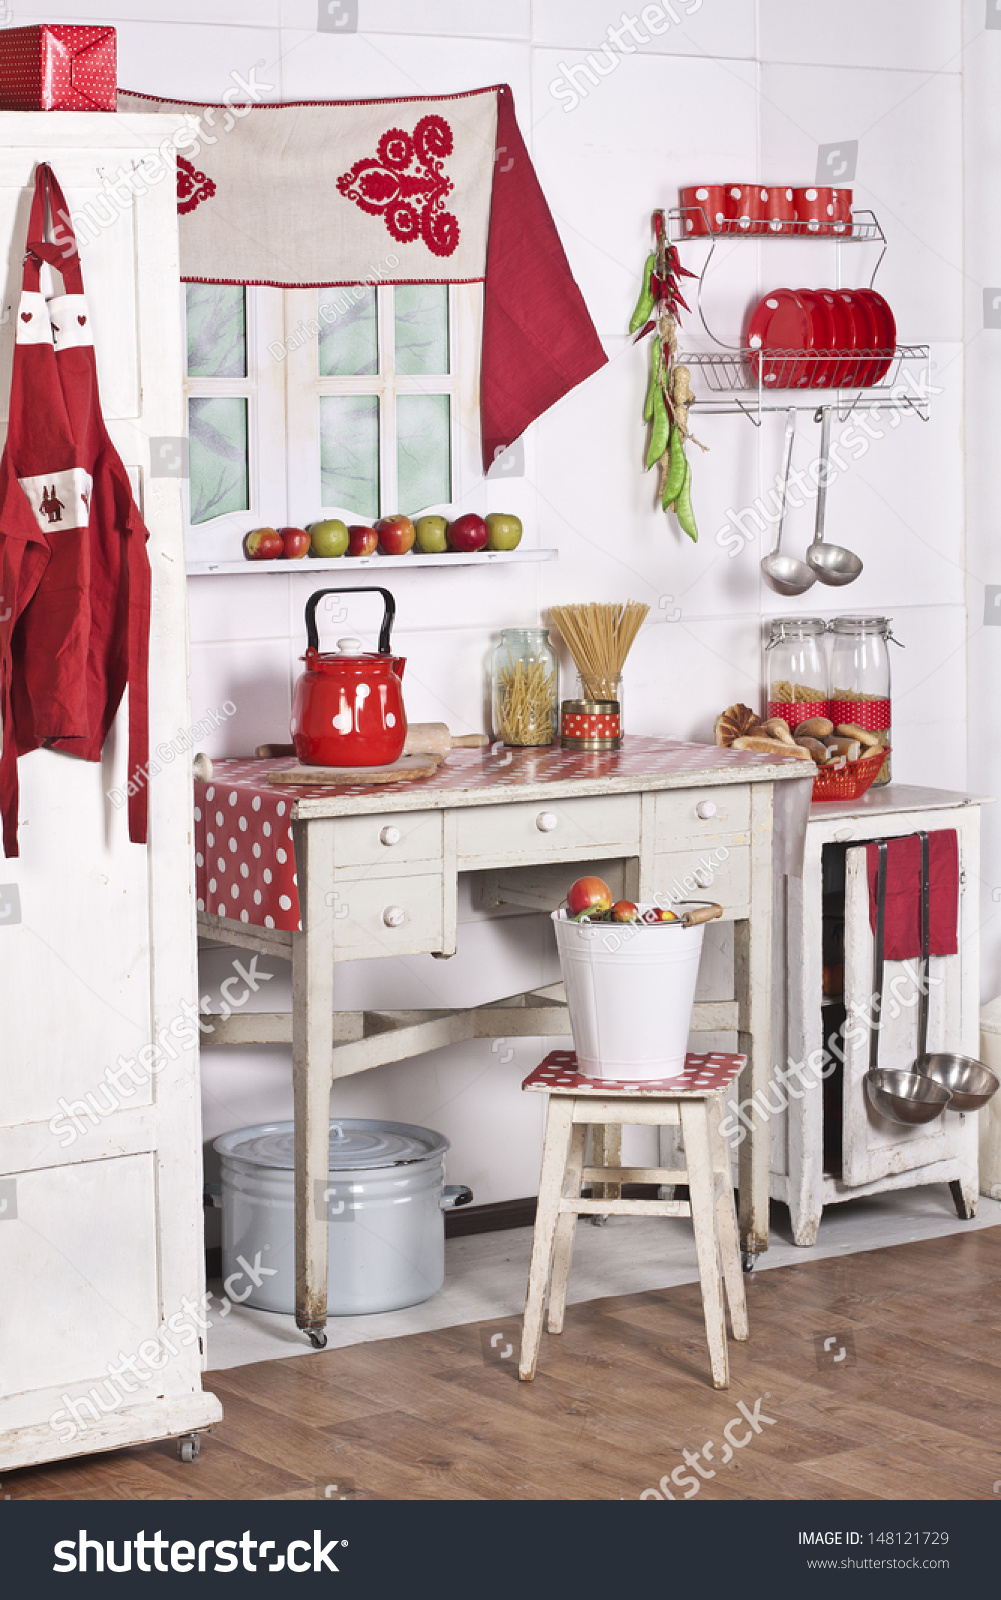 Red White Kitchen Old Furniture Food Stock Photo Edit Now 148121729